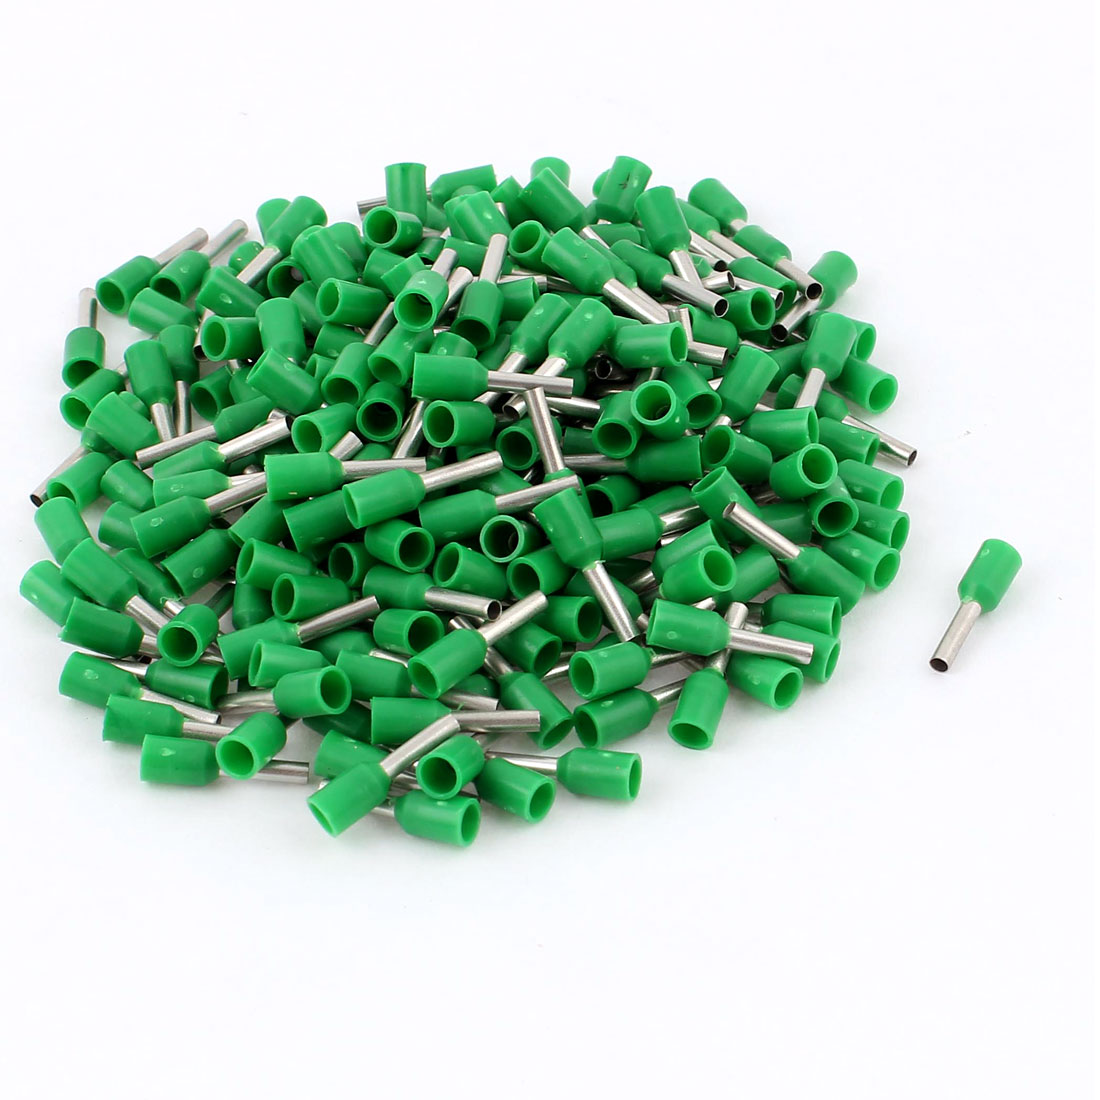 240 Pcs AGW16 Green Copper Wire Crimp Connector Insulated Ferrules Pin Cord End Terminals